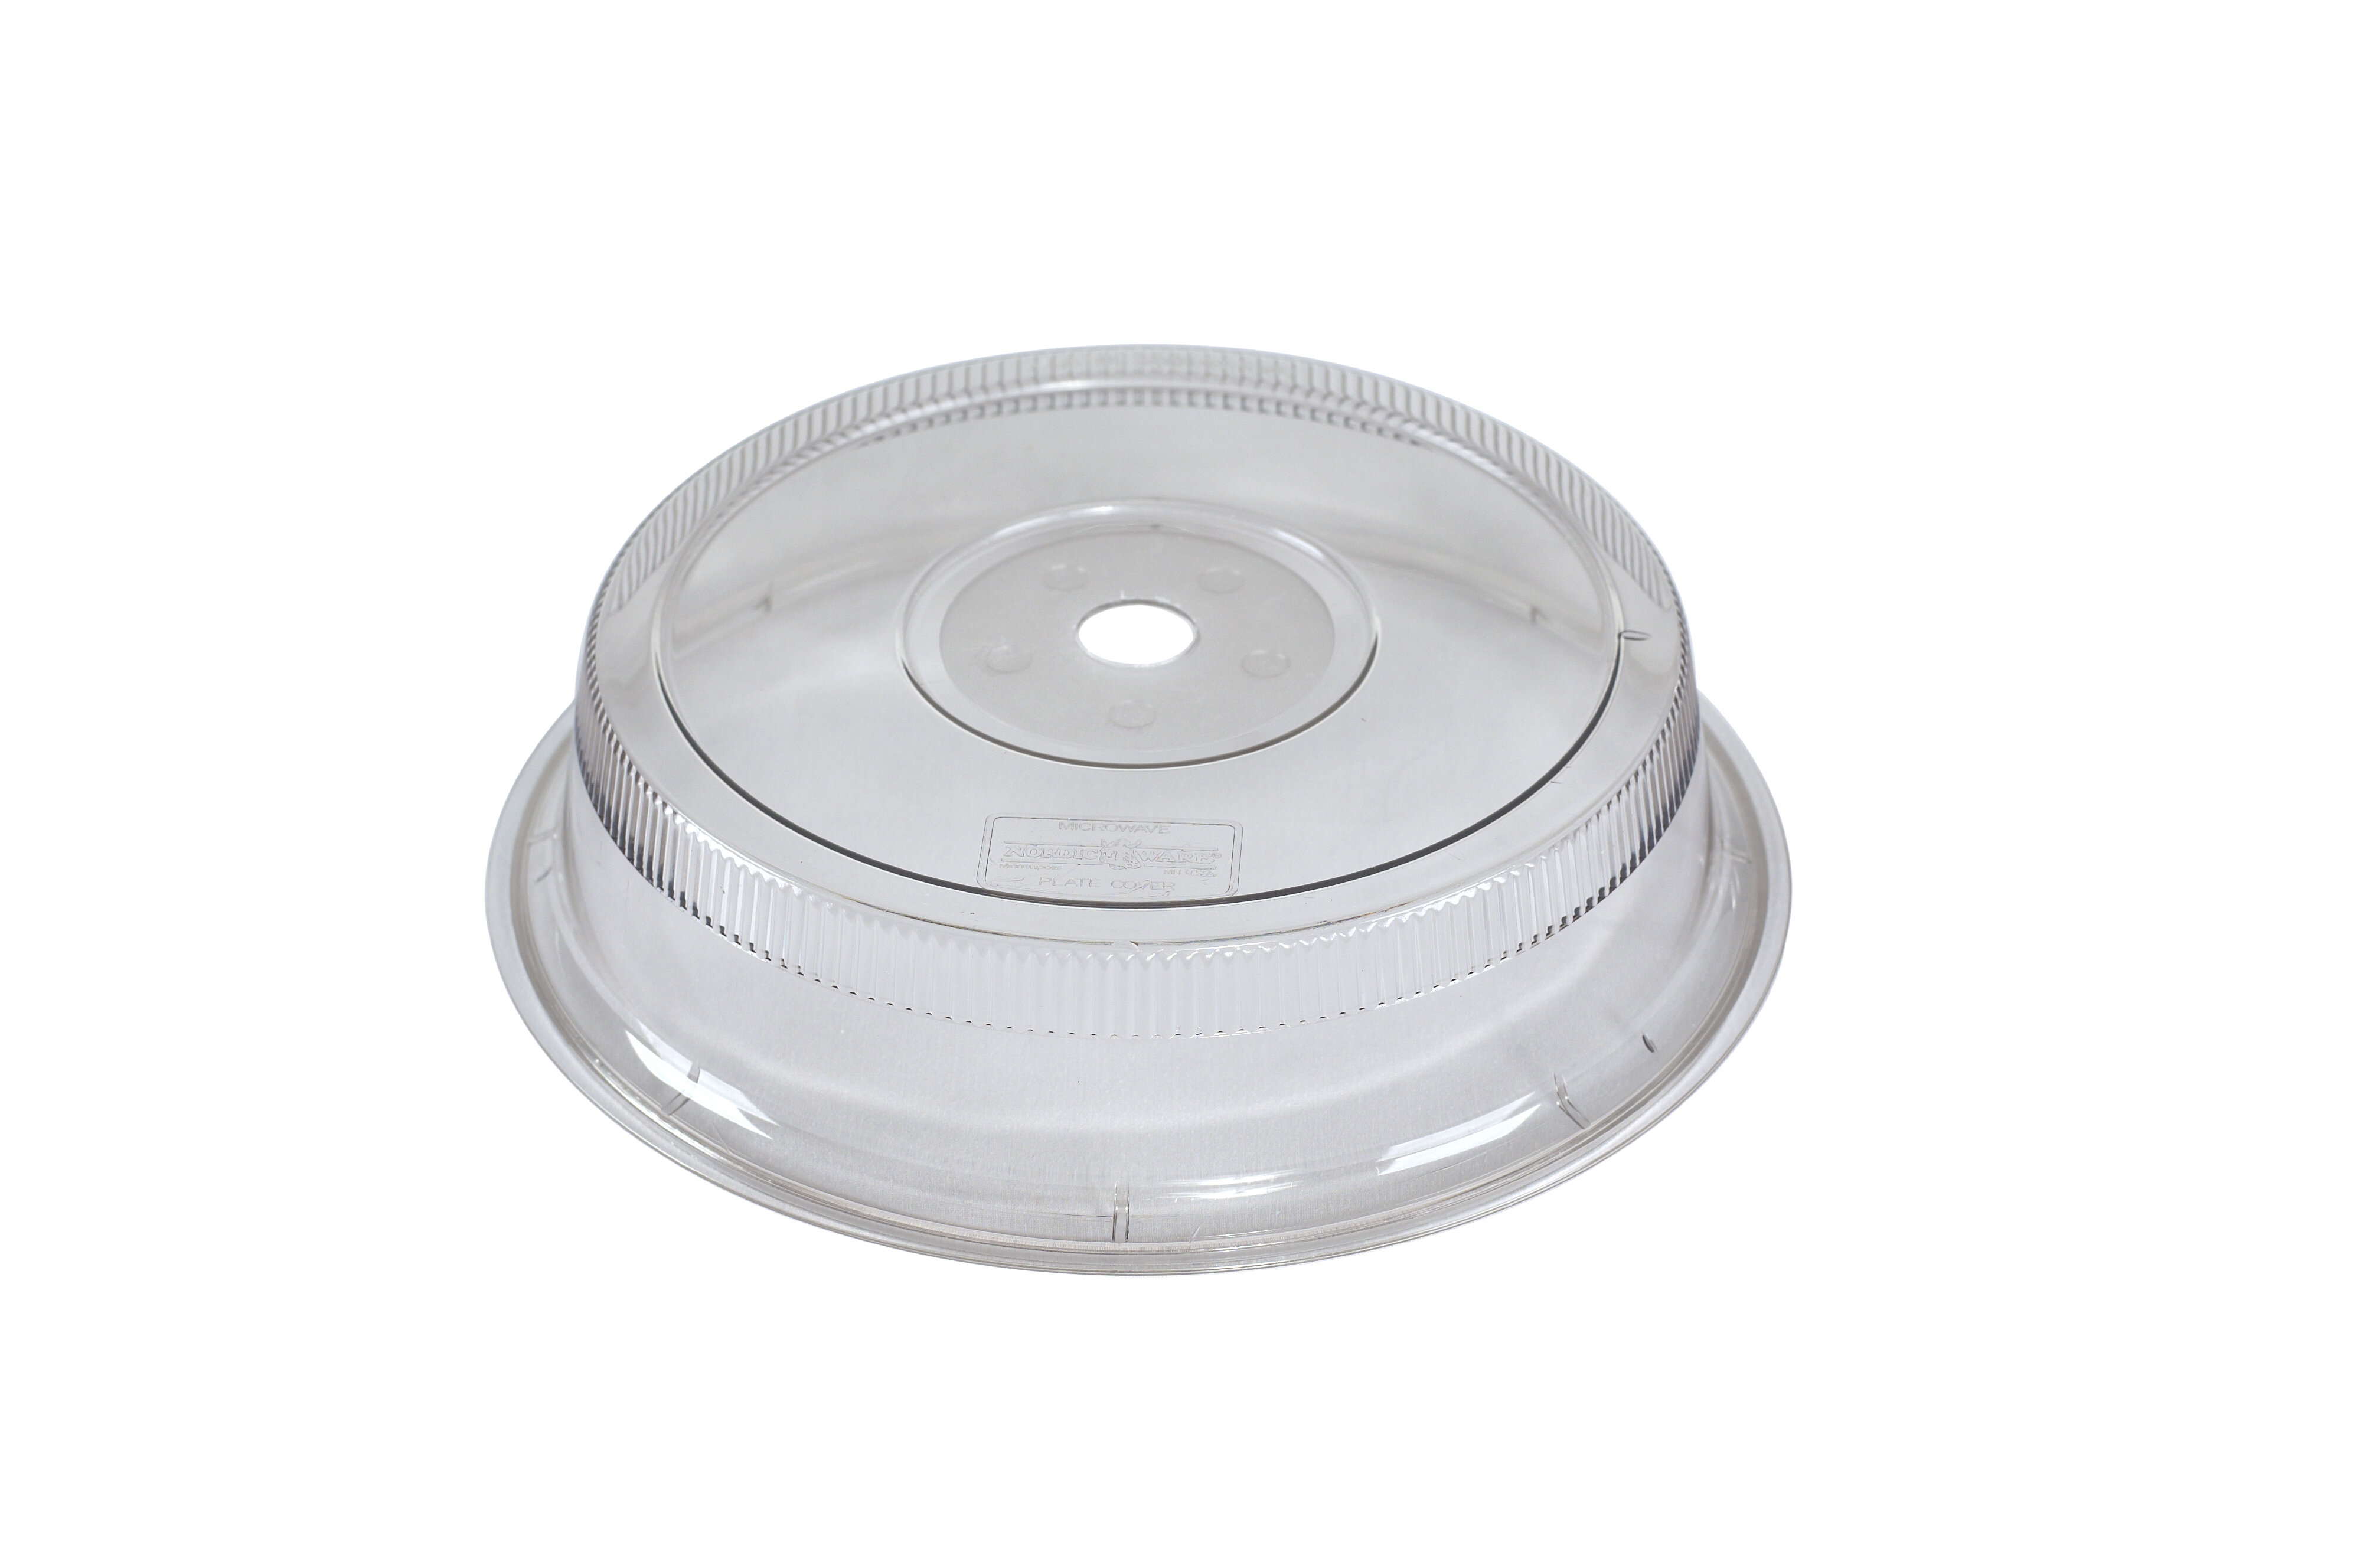 Nordic Ware Microwave Deluxe Plate Cover & Reviews